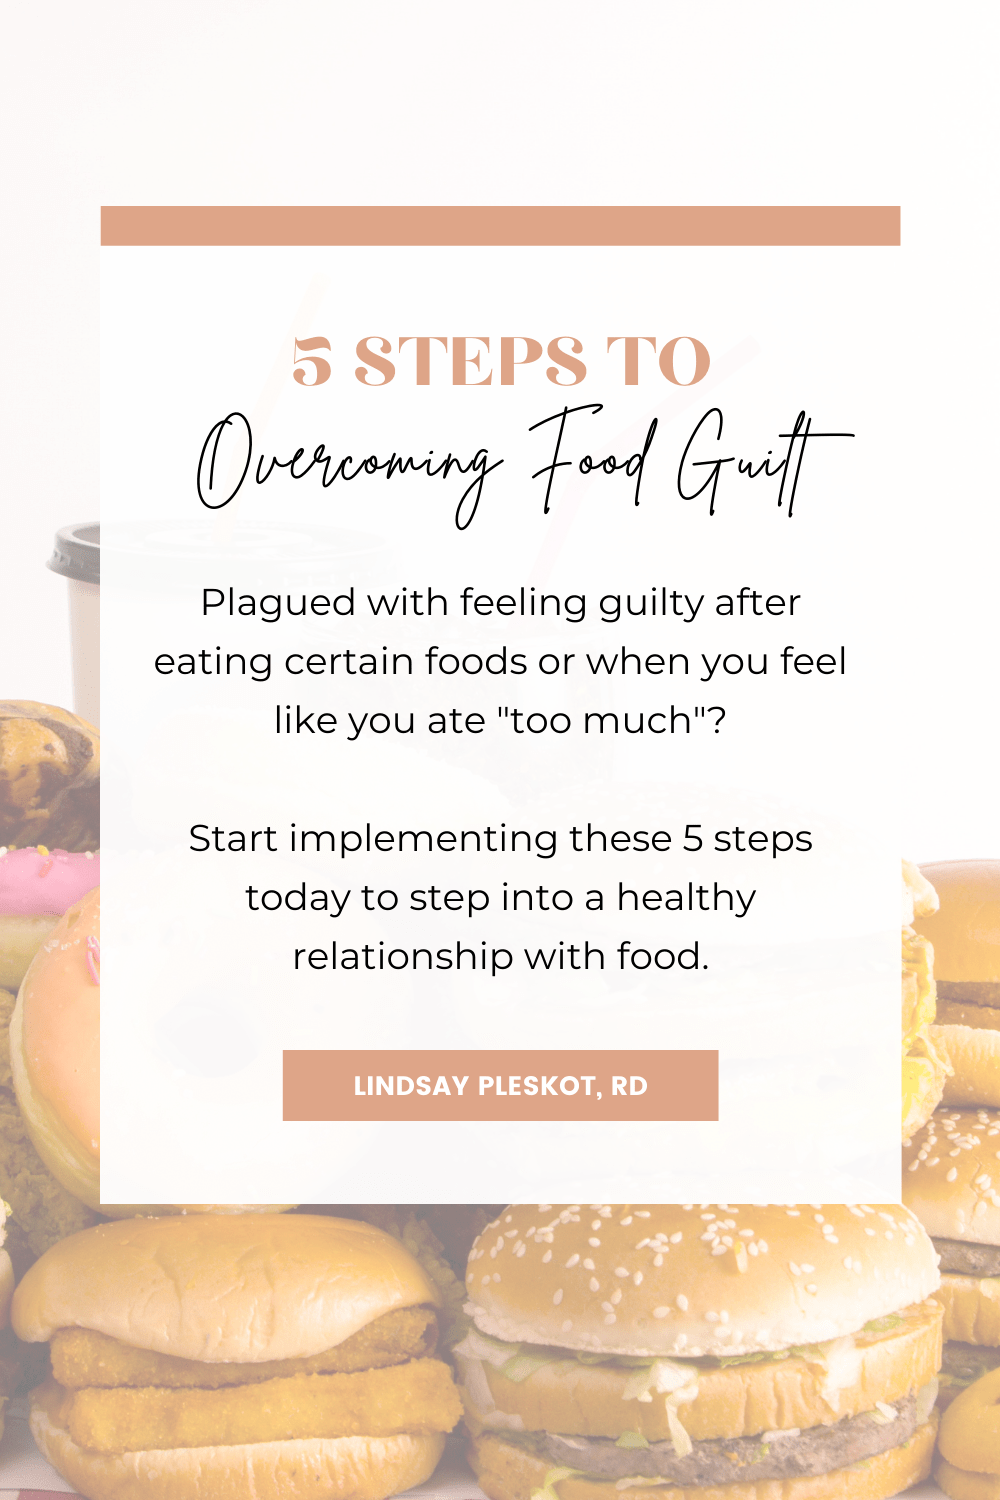 Plagued with feeling guilty after eating? Dietitian Lindsay Pleskot shares her 5 steps to overcome food guilt and shame